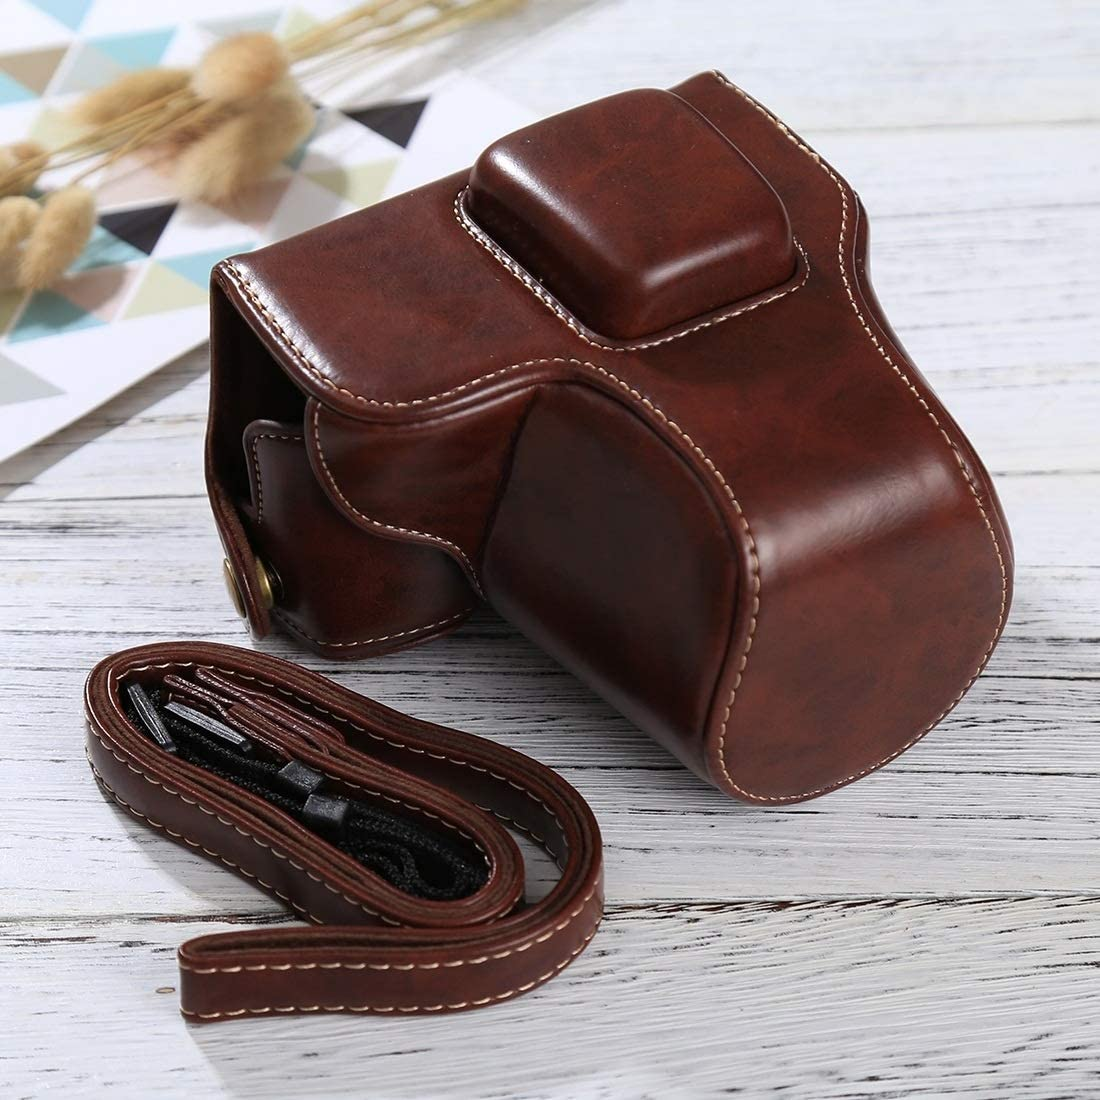 EPL8 MEETBM ZIMO,Full Body Camera PU Leather Case Bag with Strap for Olympus EPL7 Color : Coffee Black